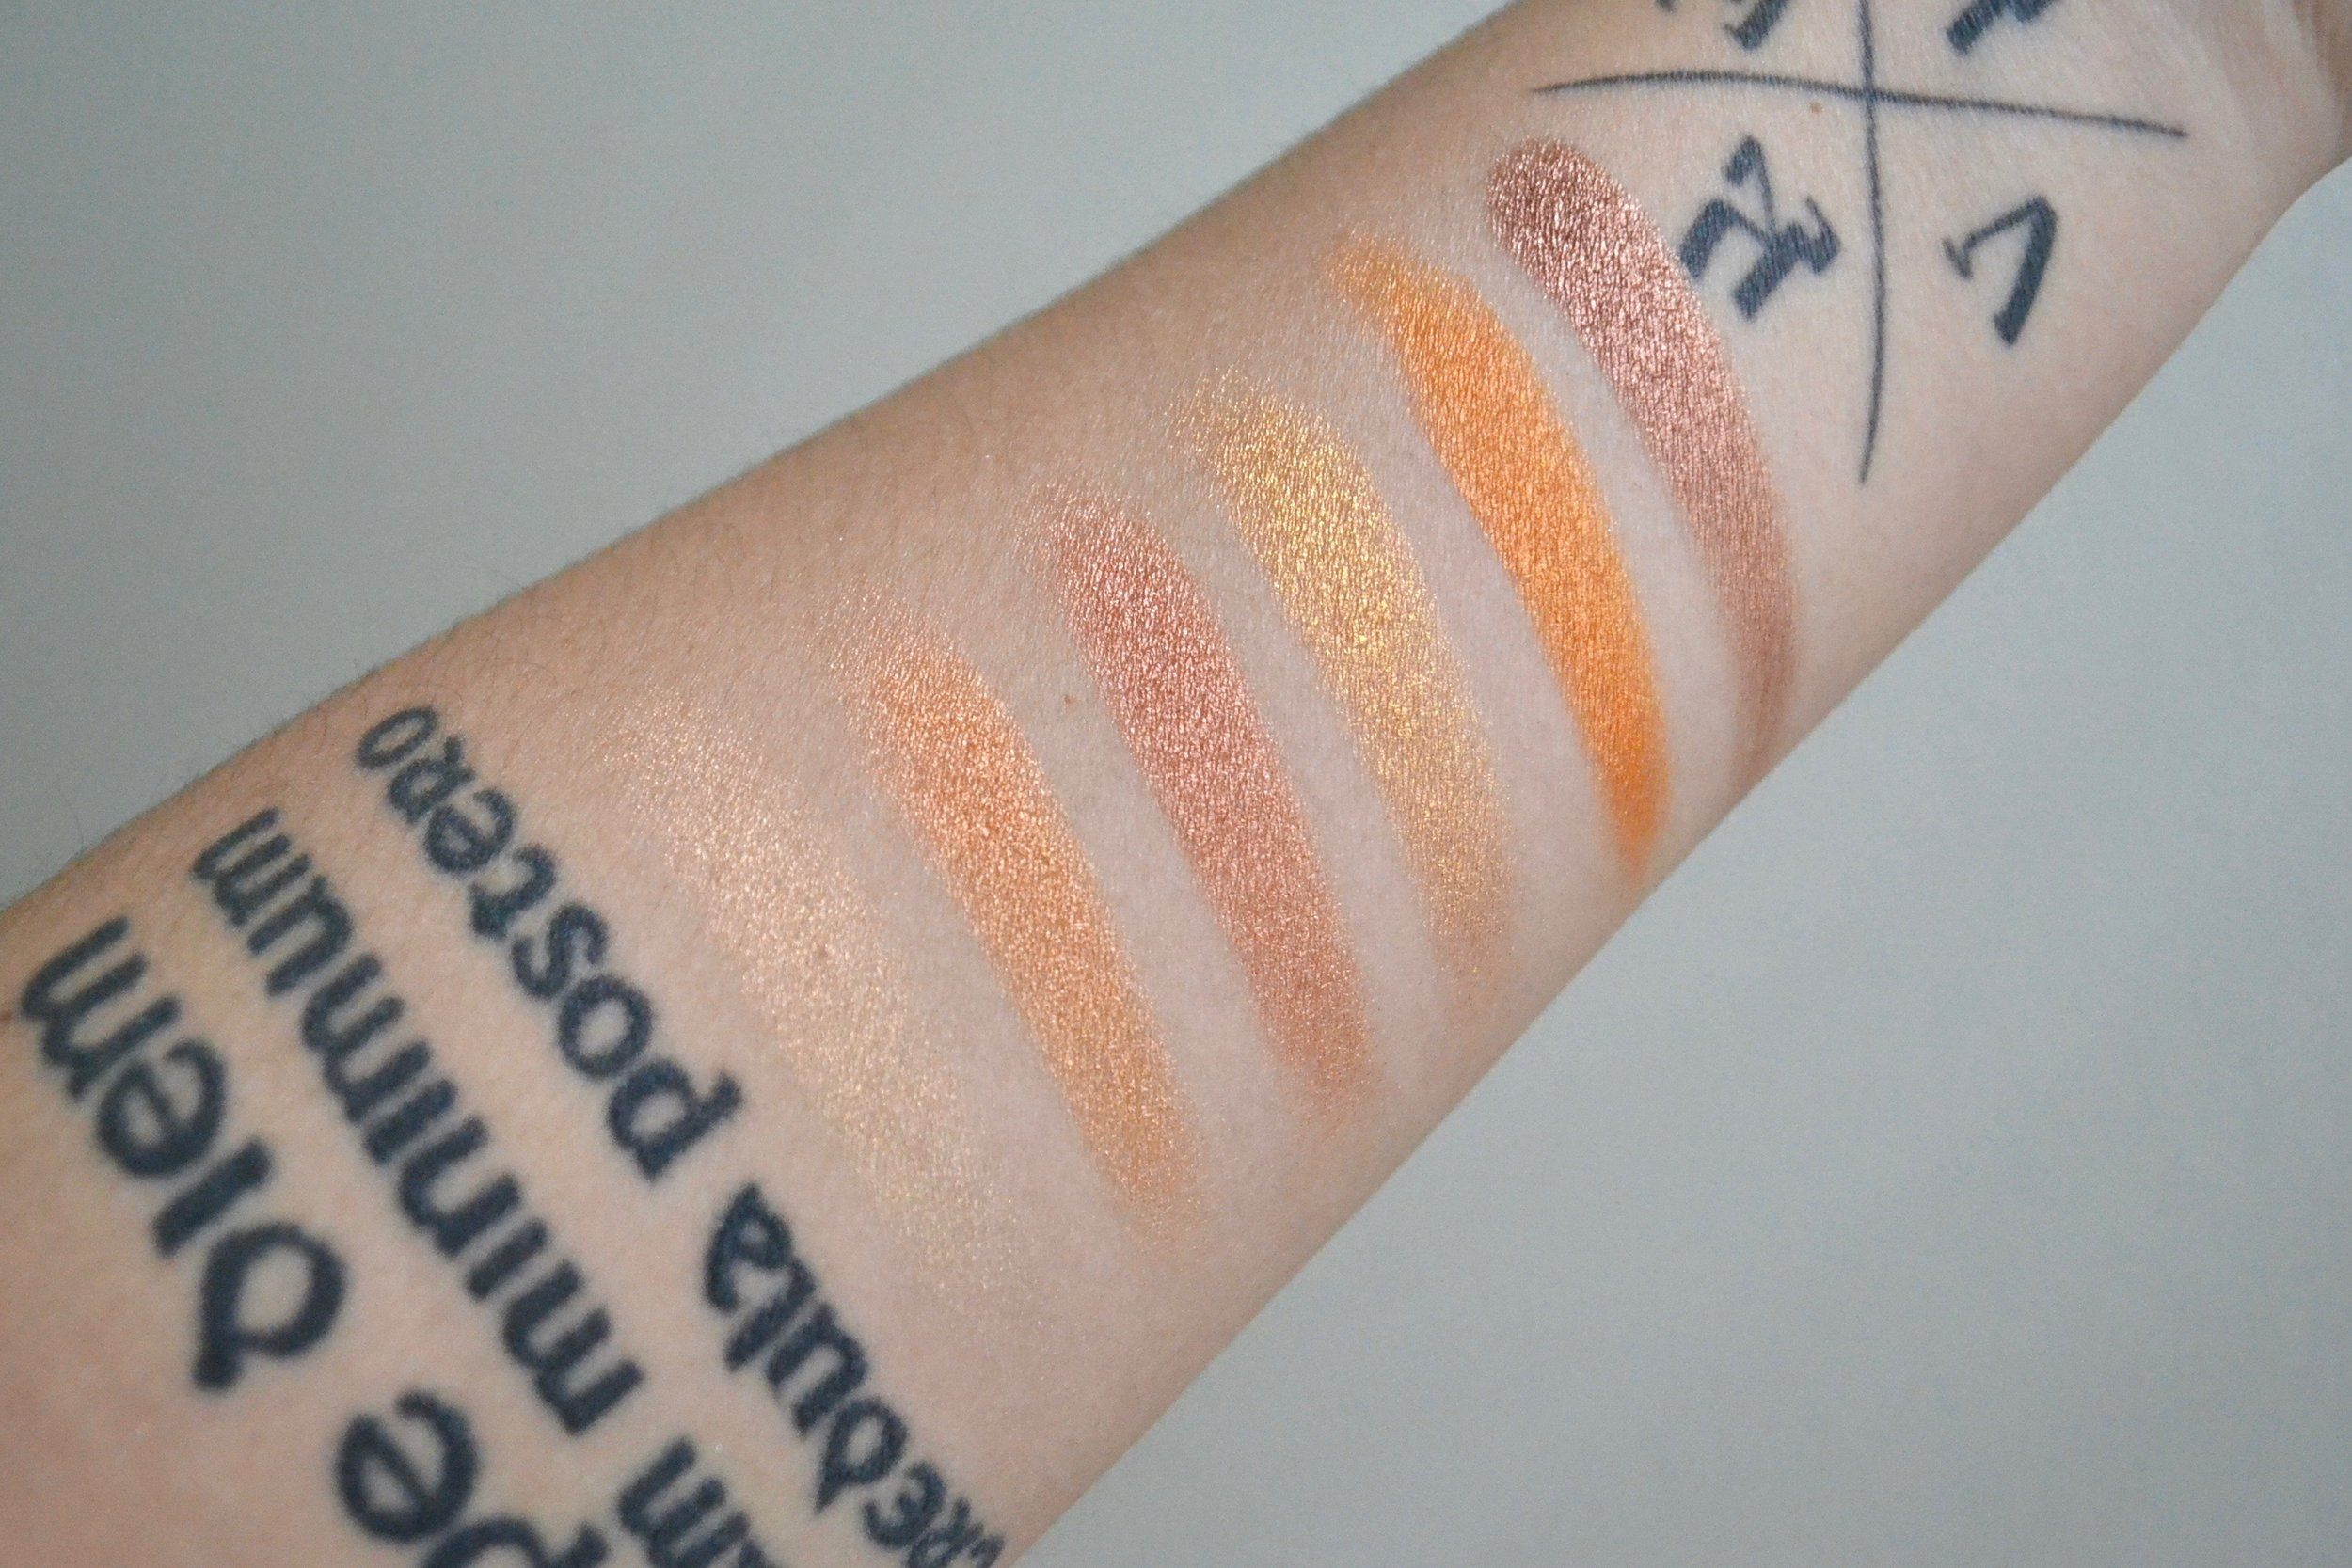 BH Cosmetics Solar Flare Palette - Review and Swatches